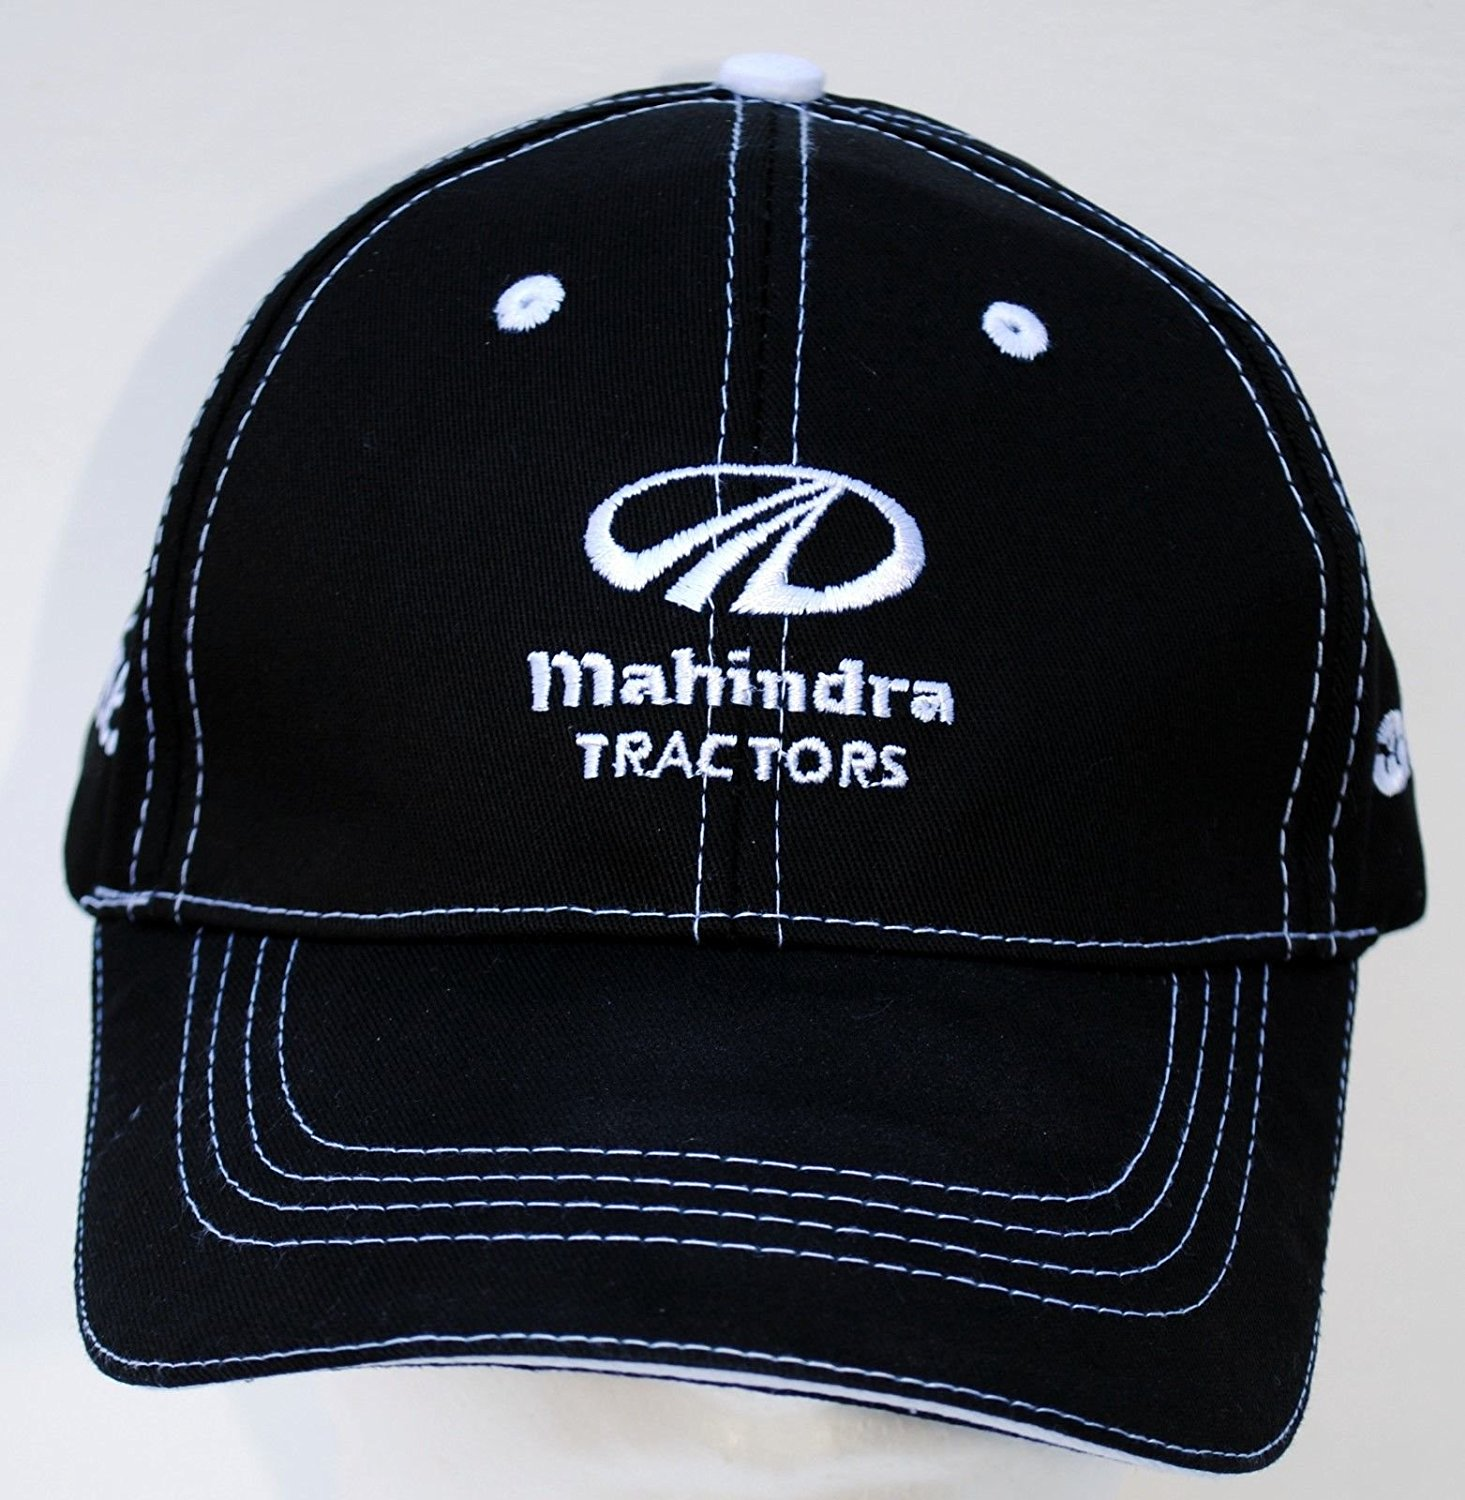 Mahindra New Oem Ball Cap / Hat Black / White Stitched - Tractor Farm Yard